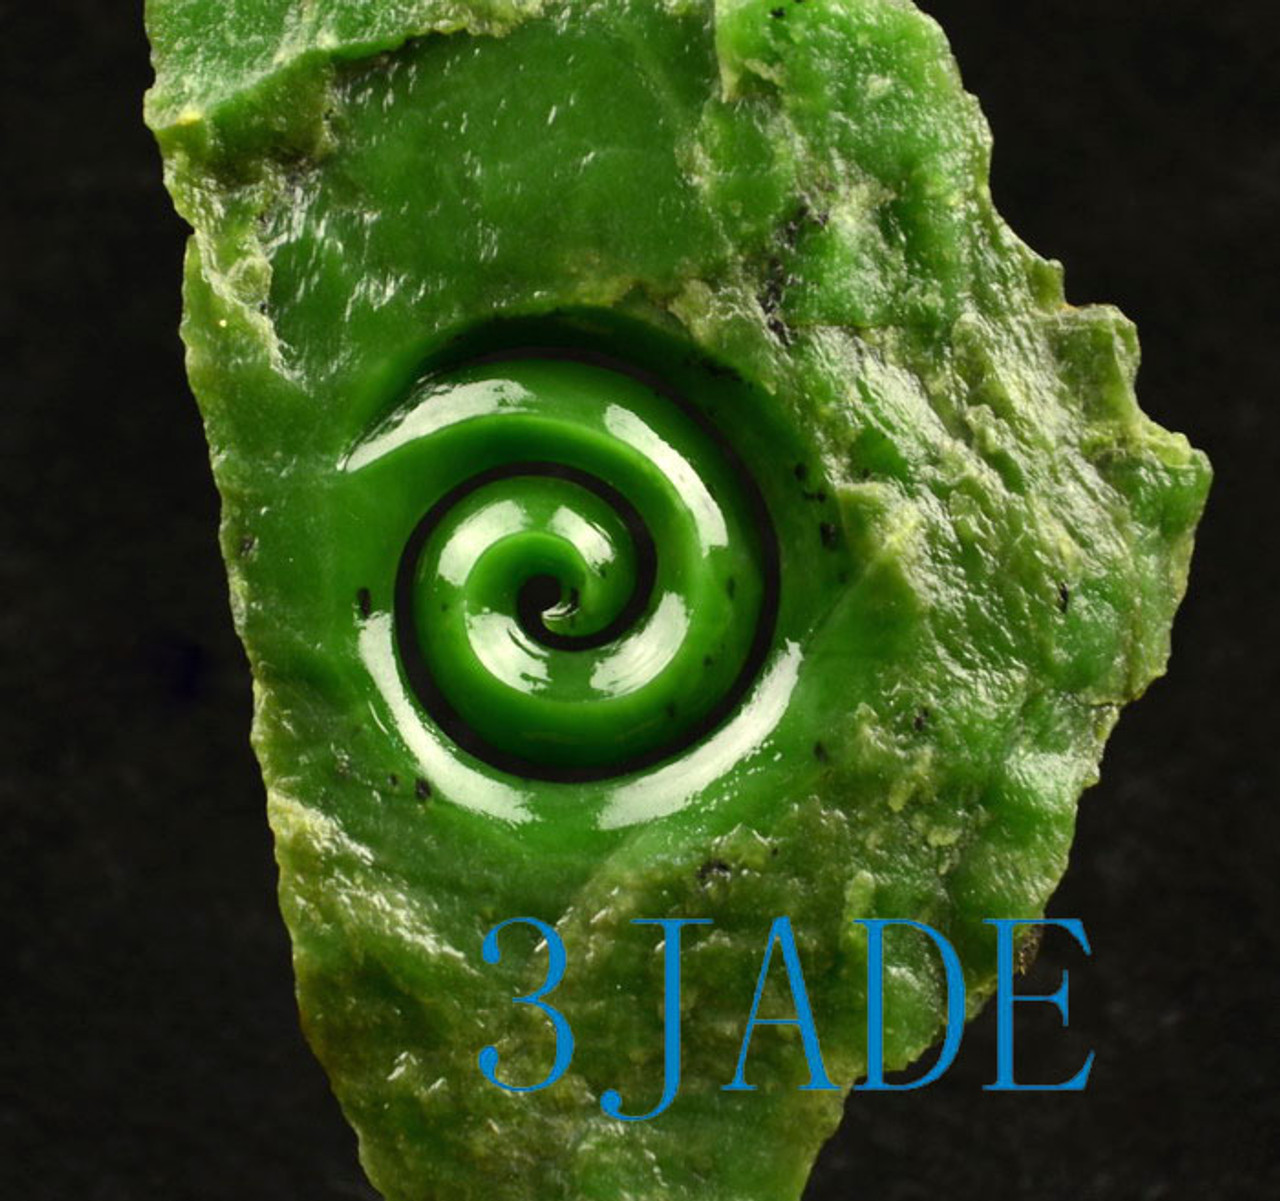 Green Nephrite Jade Koru Sculpture Statue NZ Maori Design Carving